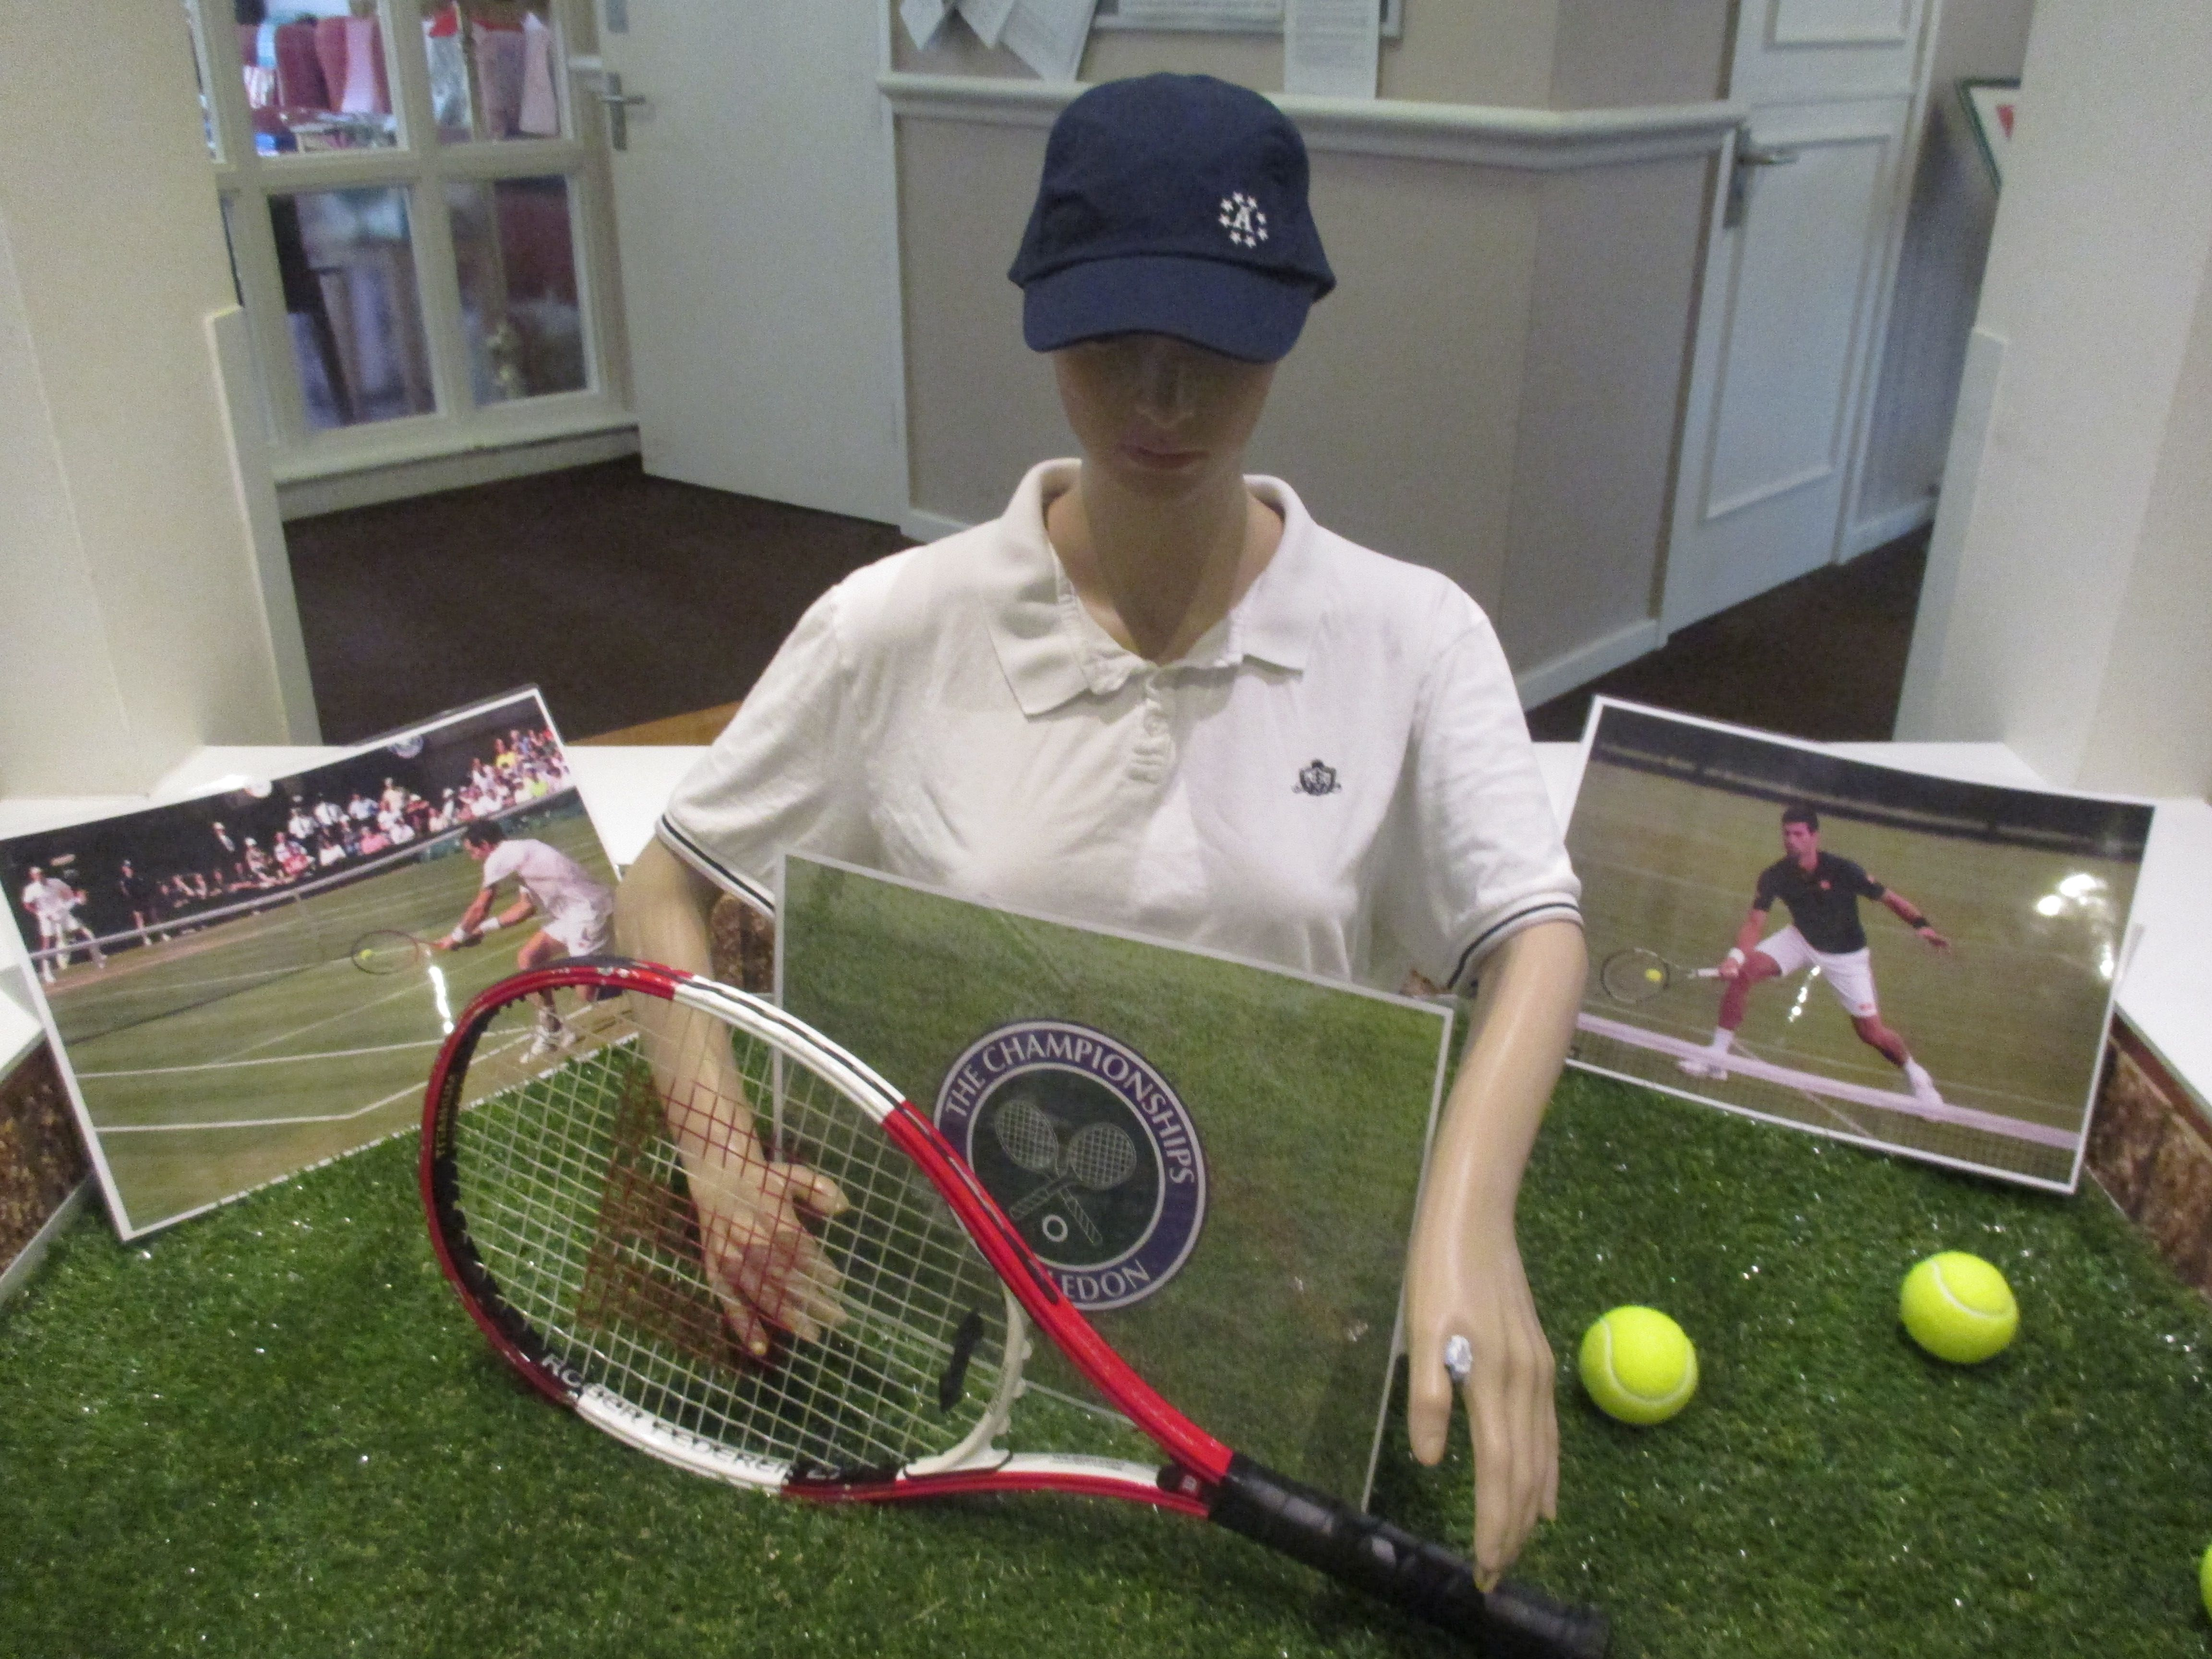 Serving up Wimbledon at Birch Green  Many of our #residents are sports fans at #BirchGreen, and now #England is no longer in the #Euros we updated our central display to another favourite pastime – #tennis.  With #Wimbledon now under way it was a great opportunity to use our imaginations and find a number of tennis-related items including a #racket, #balls and clothing, along with a blanket and 'picnic.'  We can't wait to cheer on our favourites as the famous tennis competition continues.